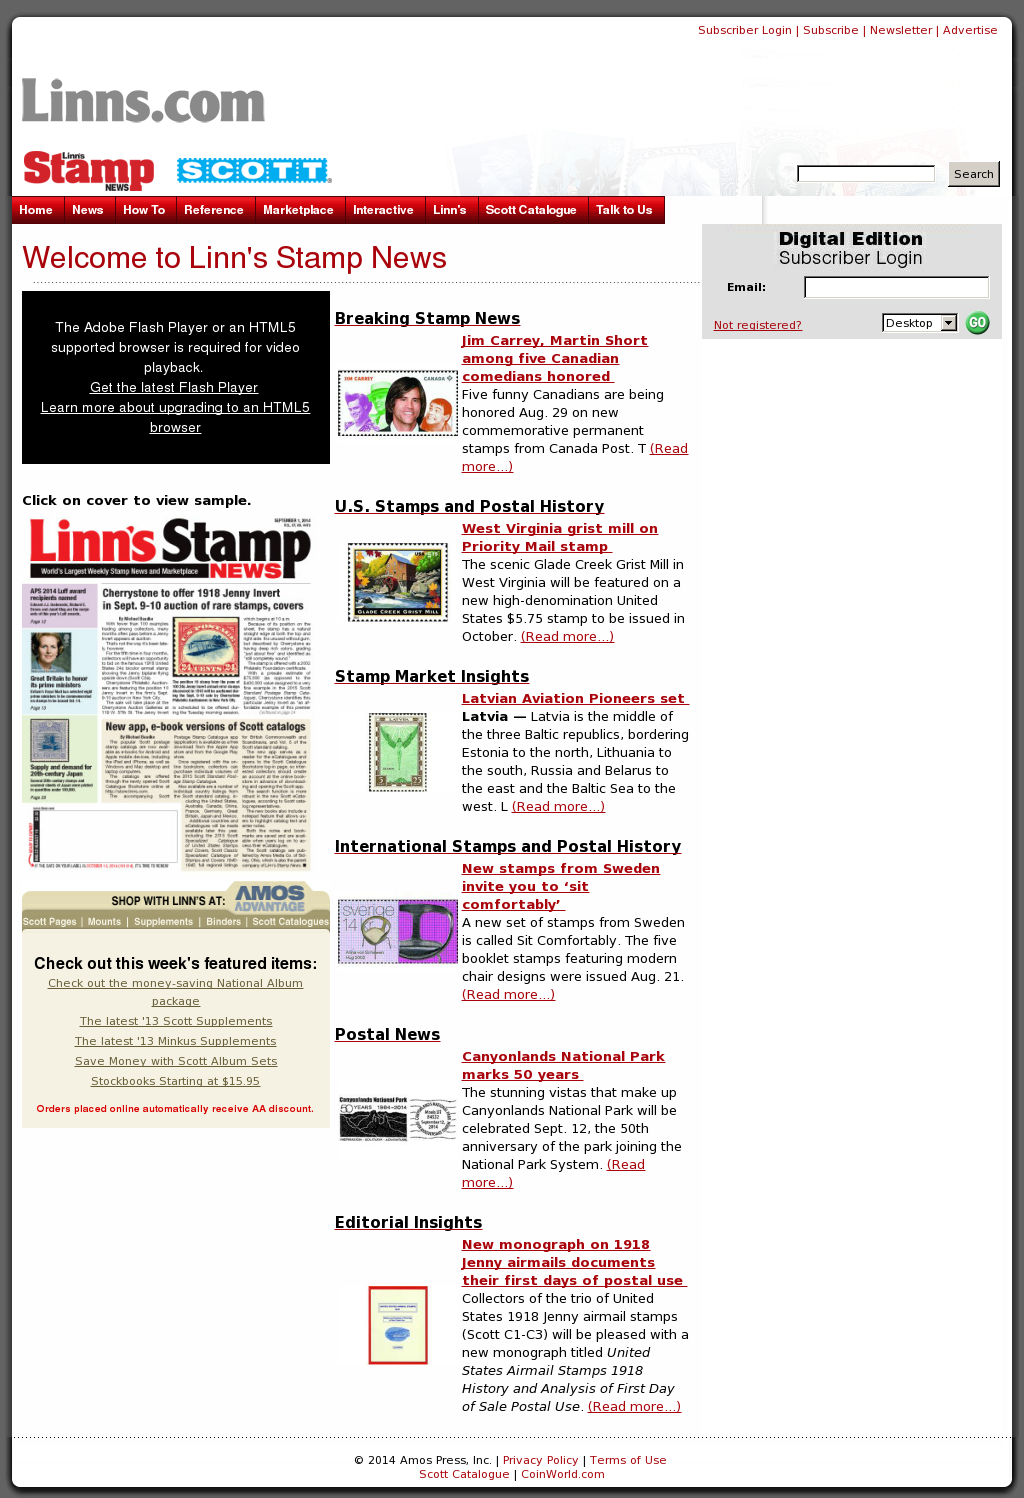 Linn's Stamp News Competitors, Revenue and Employees - Owler Company